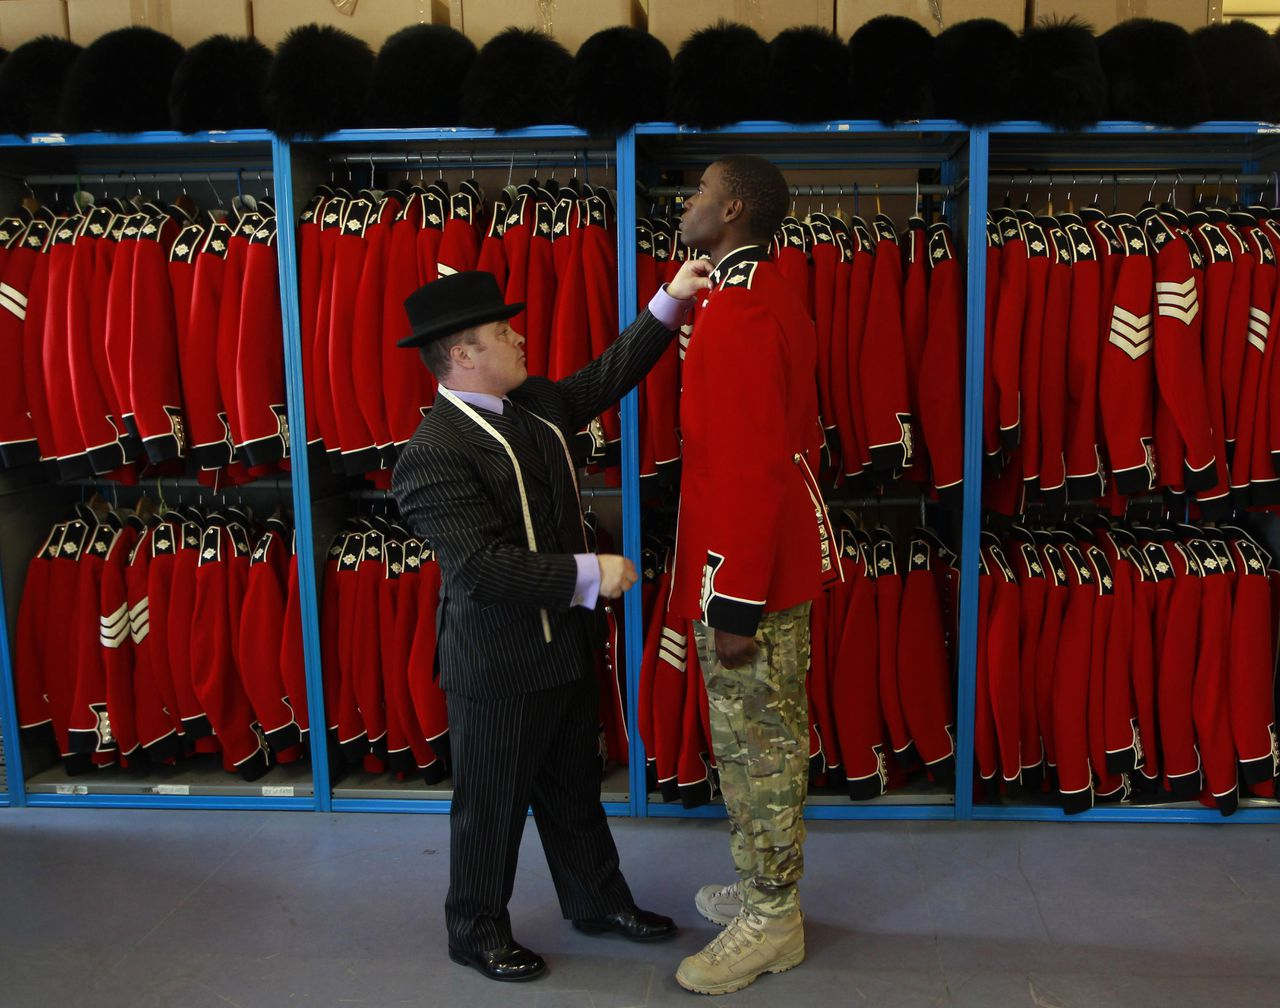 Irish Guardsman Bortnill St'Ange is fitted with his ceremonial uniform by Master Tailor Lance Sergeant Matthew Else at their barracks in Windsor, southern England April 21, 2011. The Guards will perform ceremonial duties at the wedding of Britain's Prince William and Kate Middleton on April 29. REUTERS/Eddie Keogh (BRITAIN - Tags: ROYALS MILITARY SOCIETY)